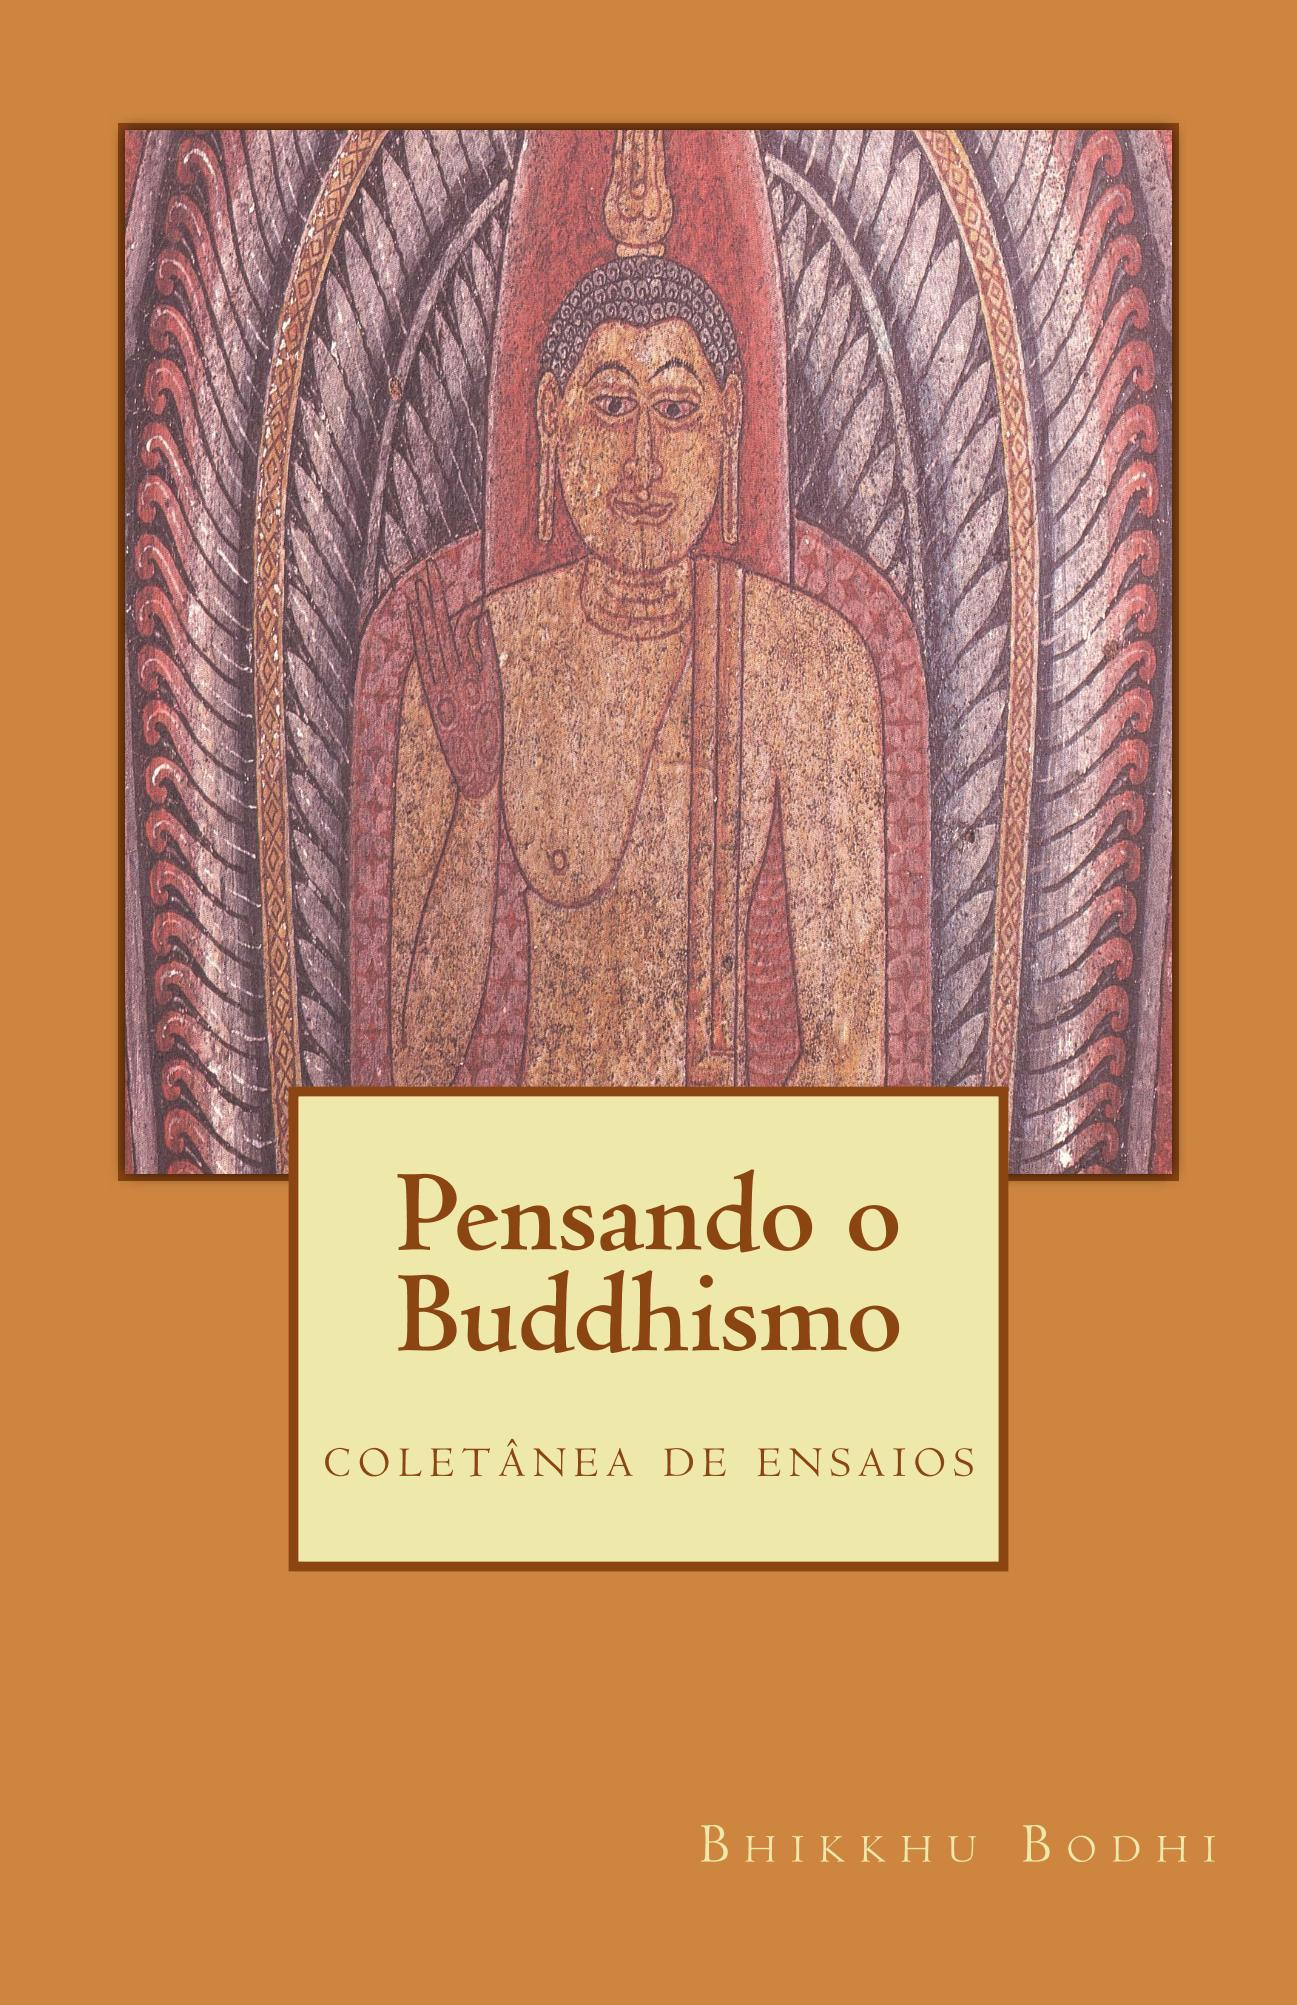 Pensando o Buddhismo